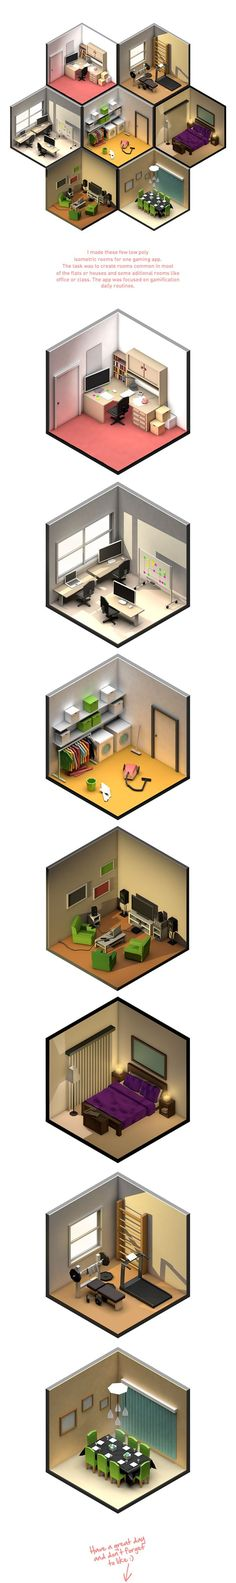 Low Poly rooms by Petr Kollarcik, via Behance (Can be used to teach the rooms of a house and their furniture in Spanish):